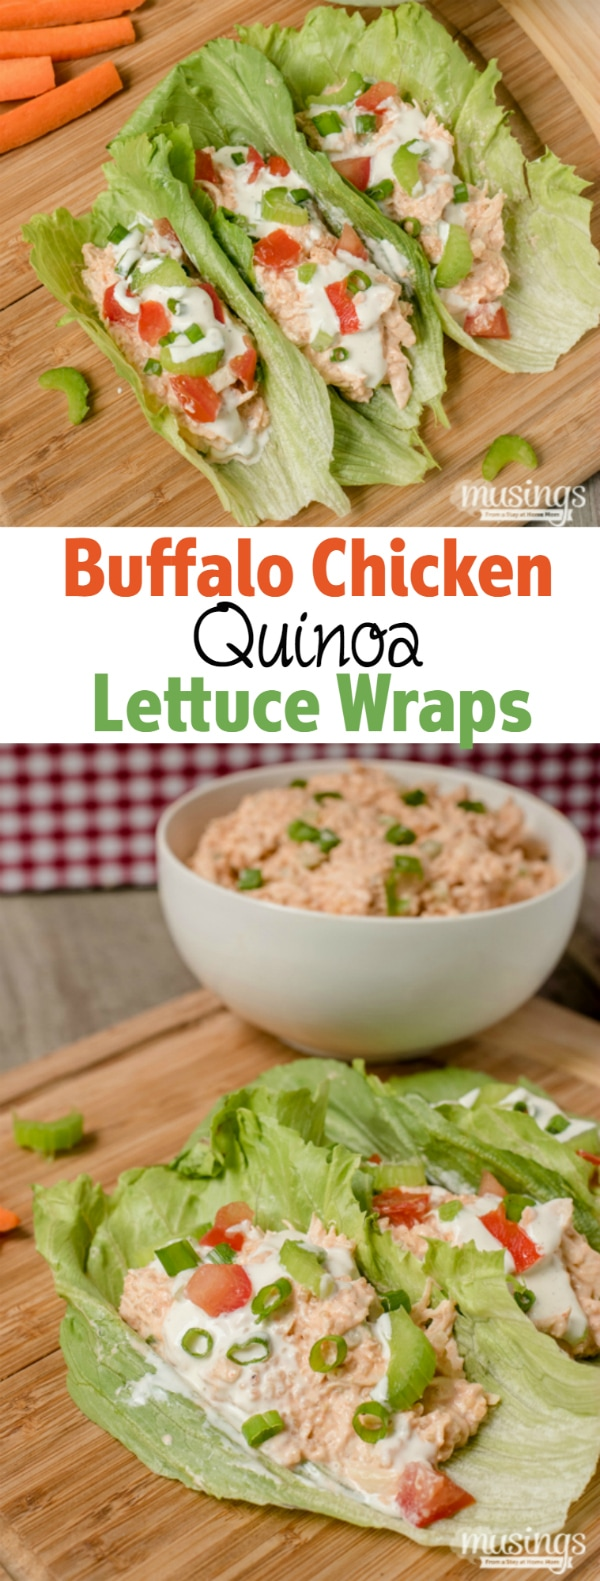 Buffalo Chicken Quinoa Lettuce Wrapsareaperfect lunch or quick and easy dinner; you'll love how spicy and tangy this deliciously low carb recipe is!